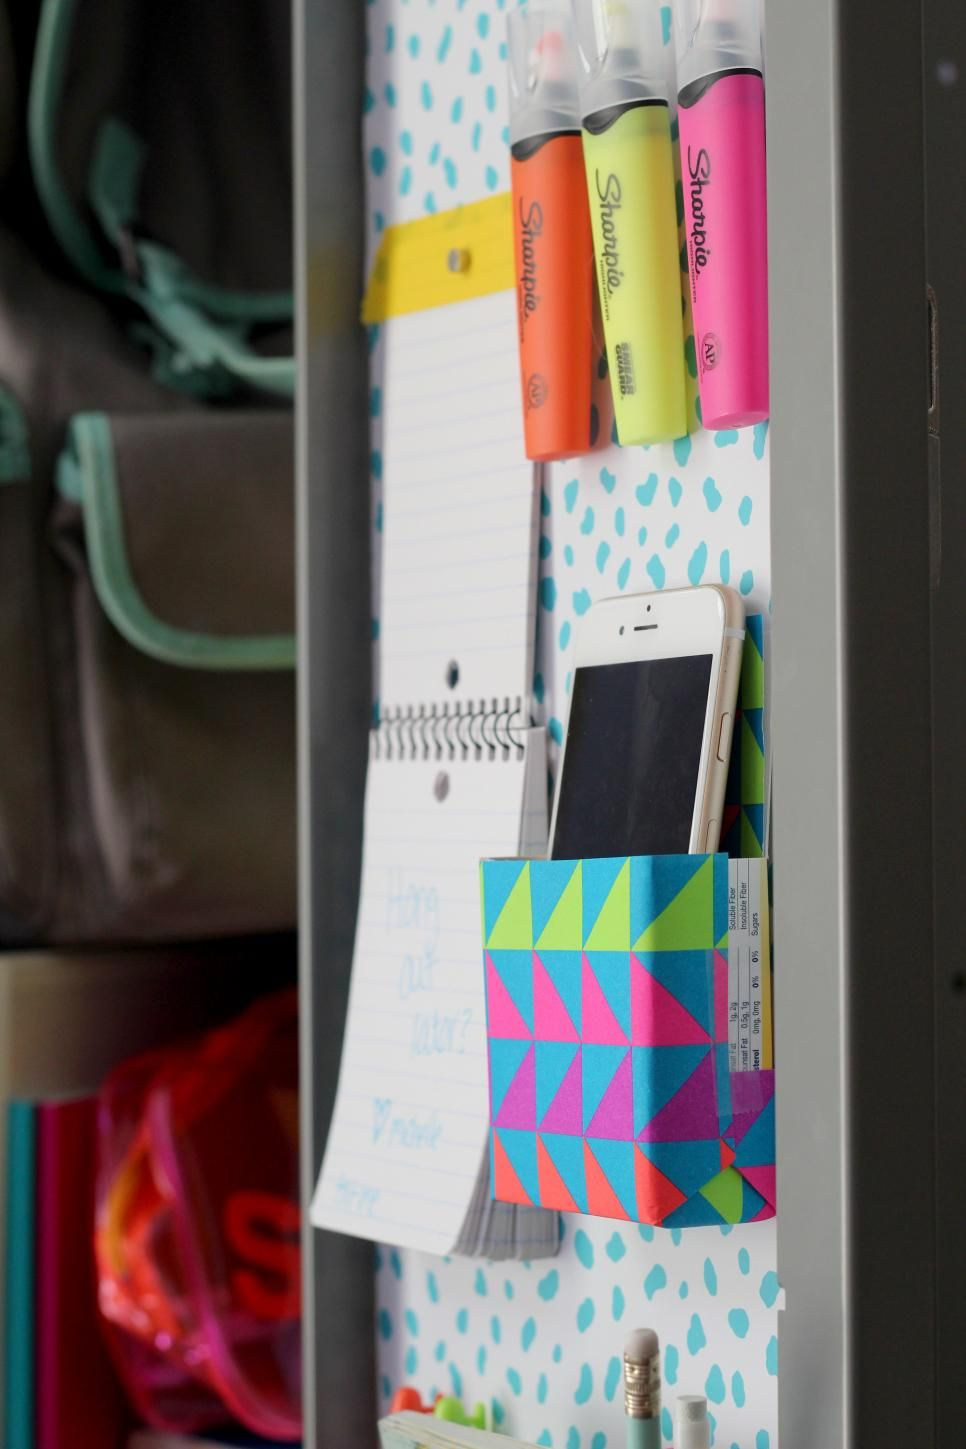 22 diy locker decorating ideas diy locker lockers and hgtv 22 diy locker decorating ideas easy crafts and homemade decorating gift ideas hgtv solutioingenieria Images